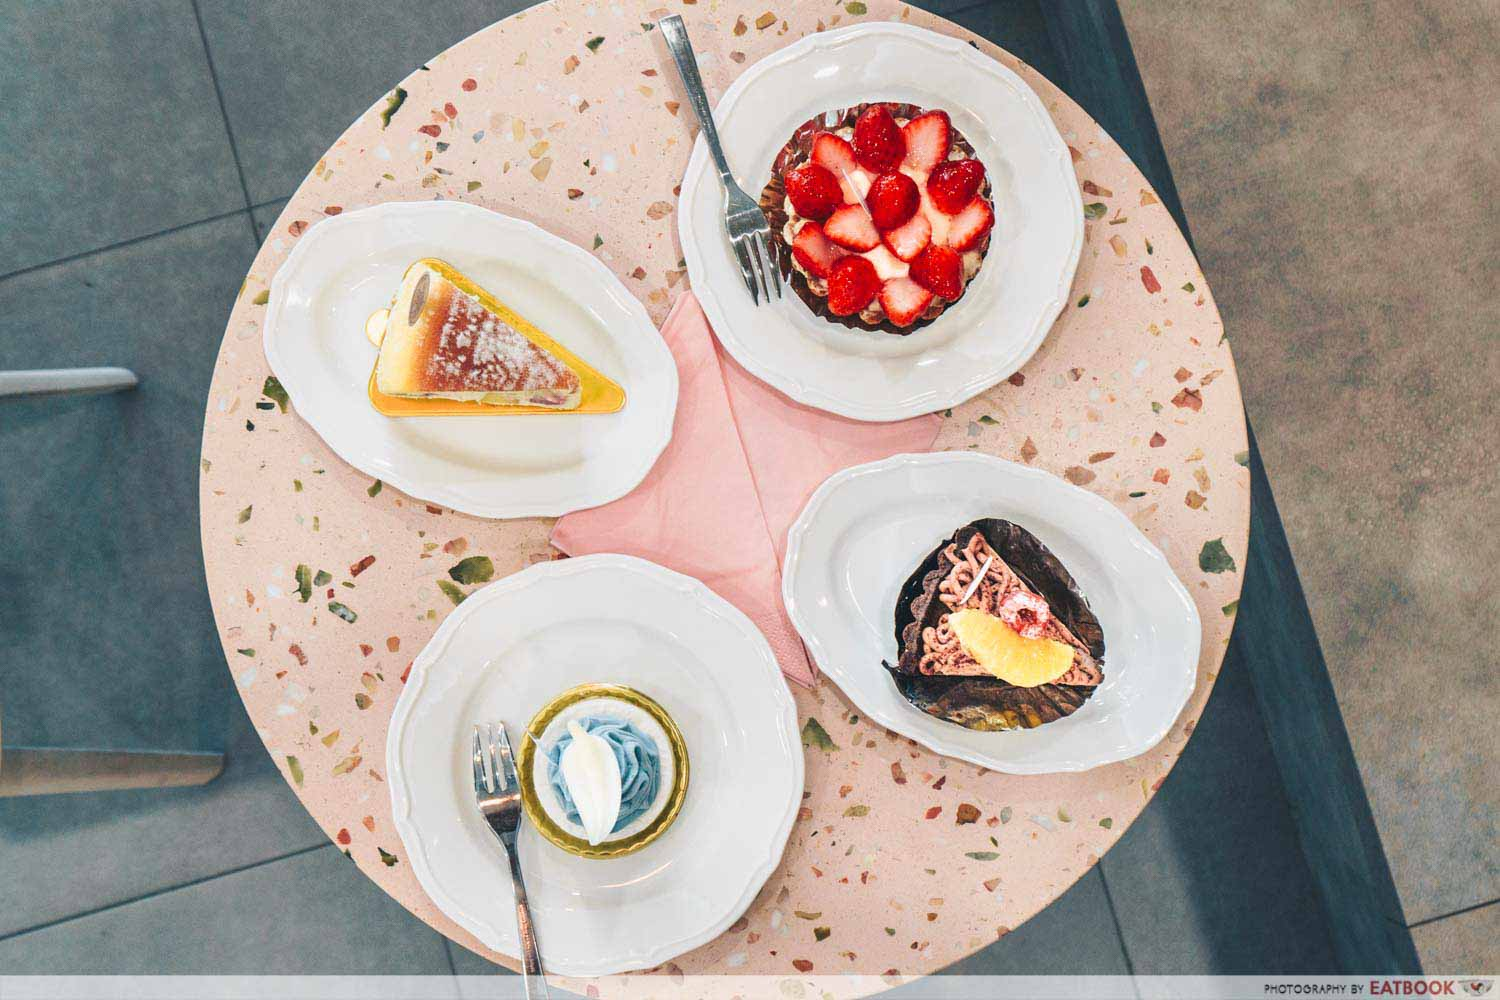 Flor Patisserie - flatlay of pastries